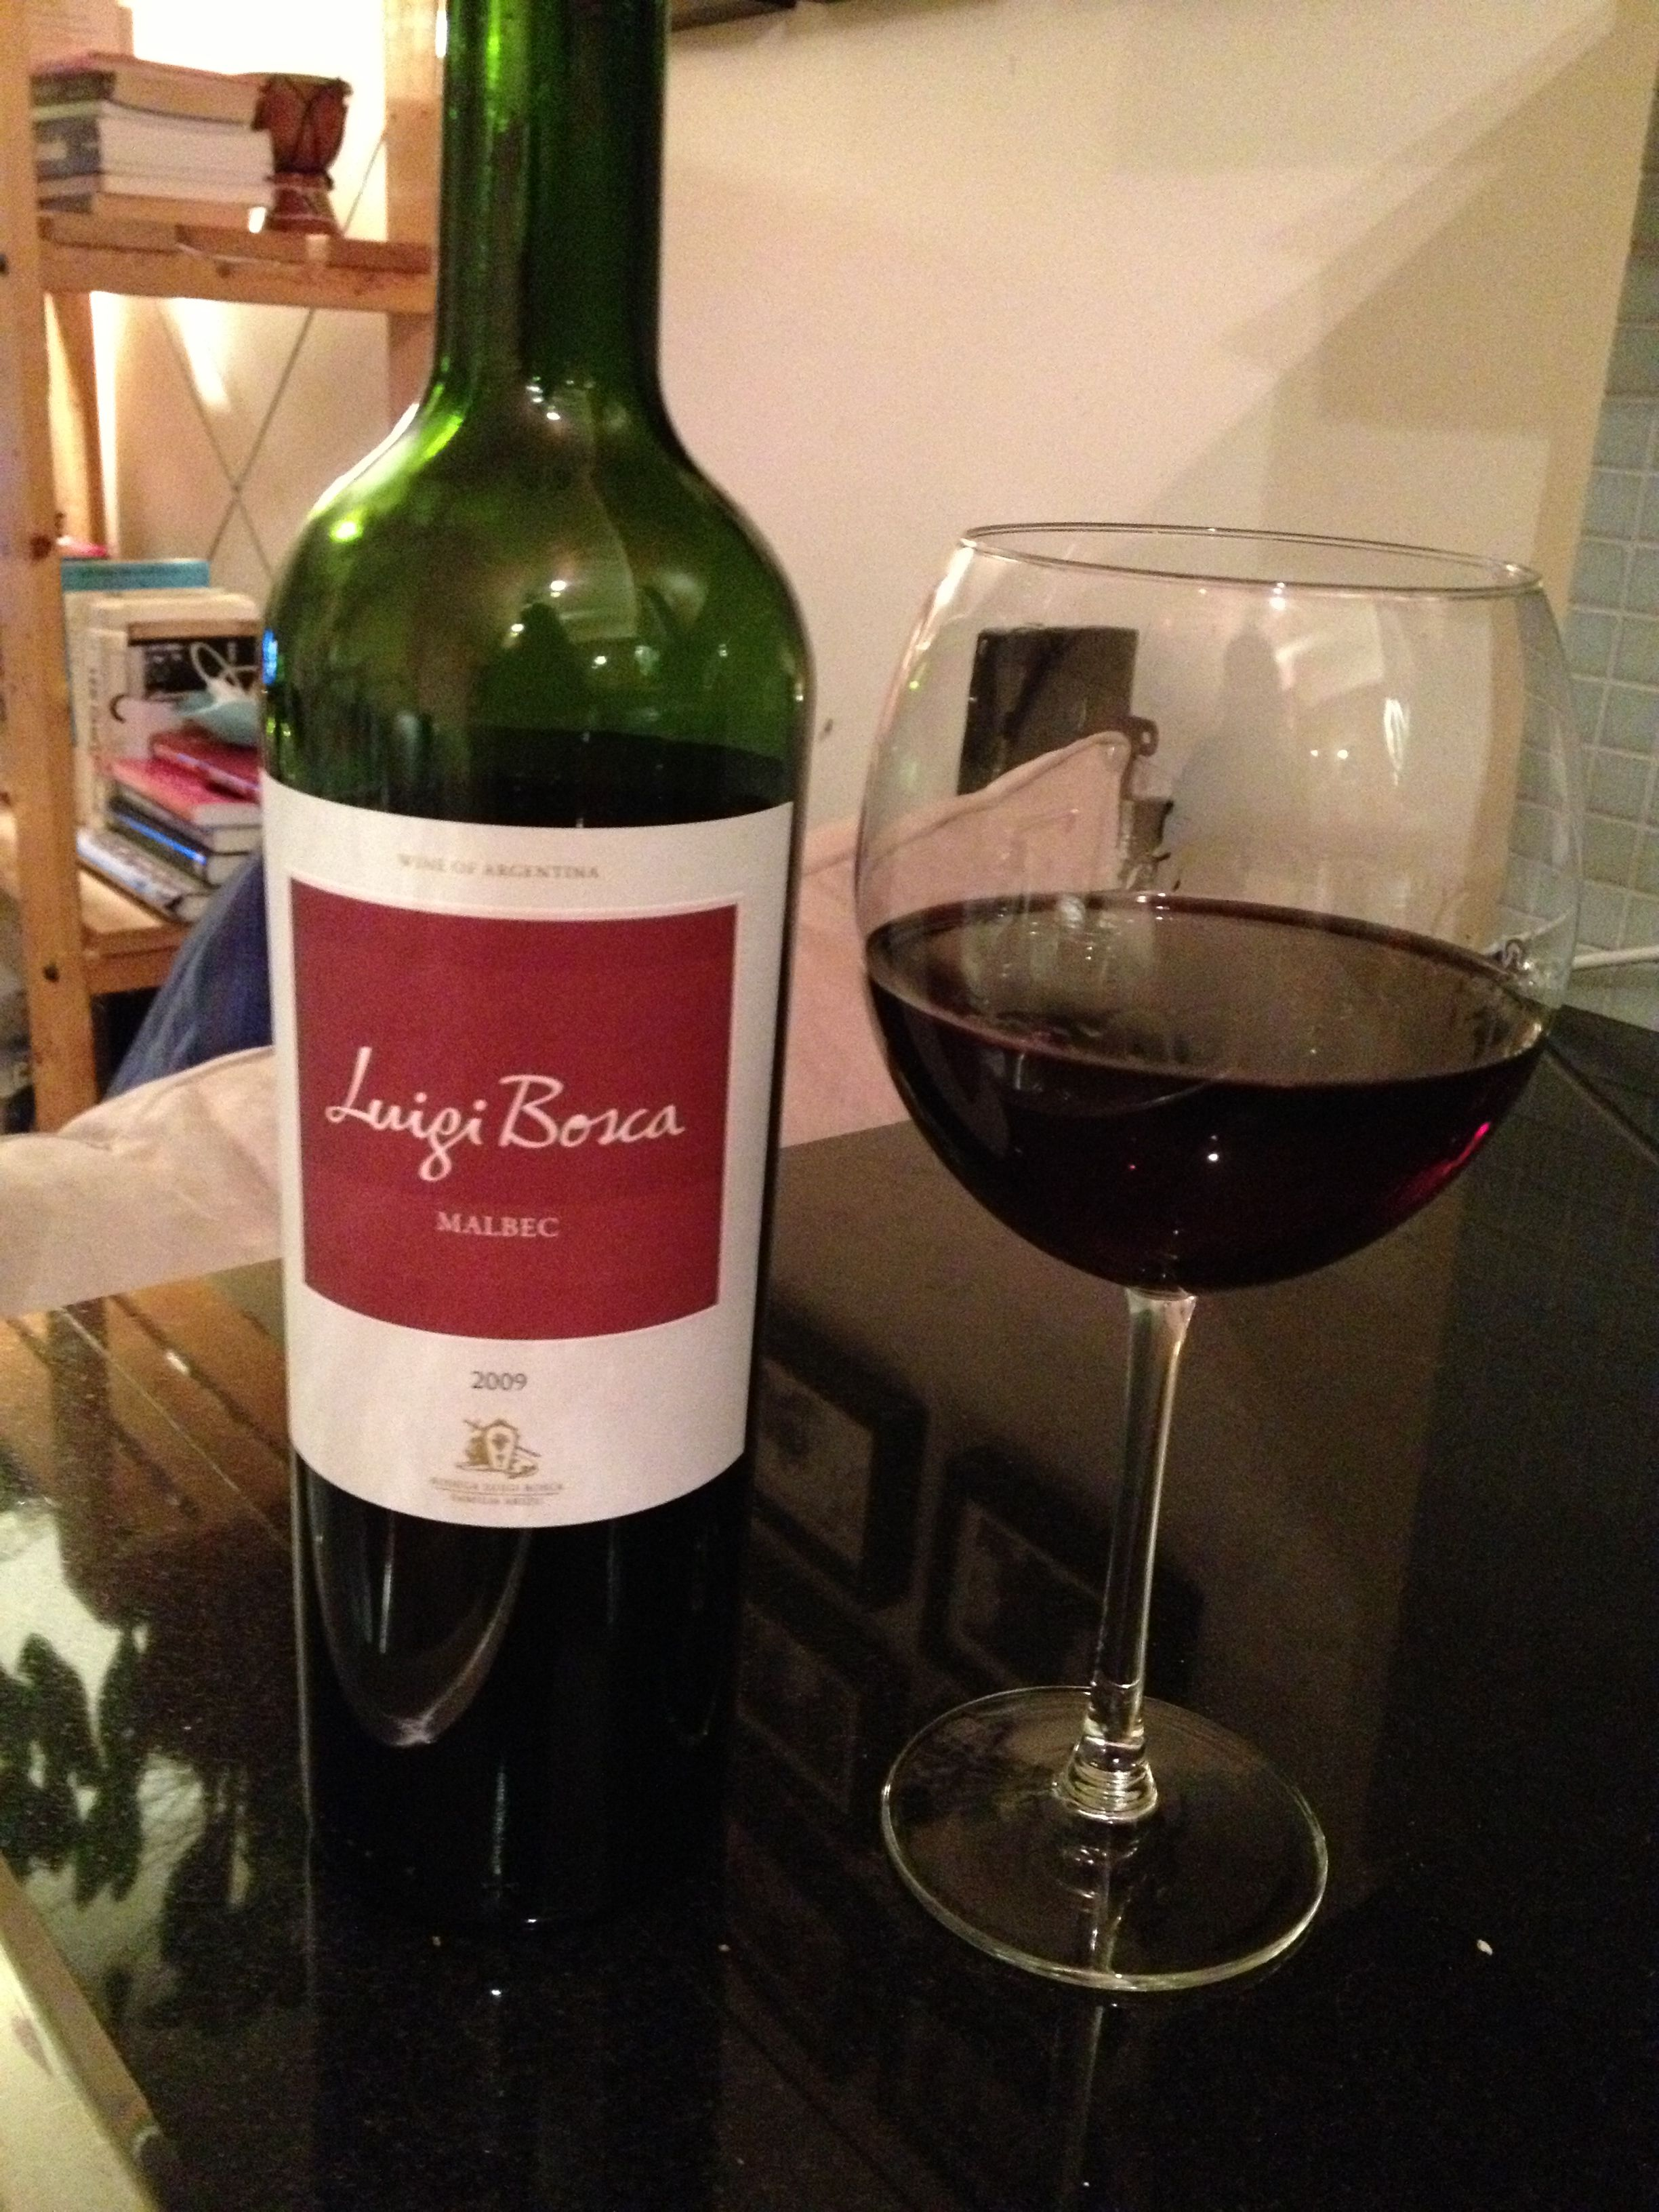 Luigi Bosca Malbec 2009 Malbec Wine Bottle Alcoholic Drinks